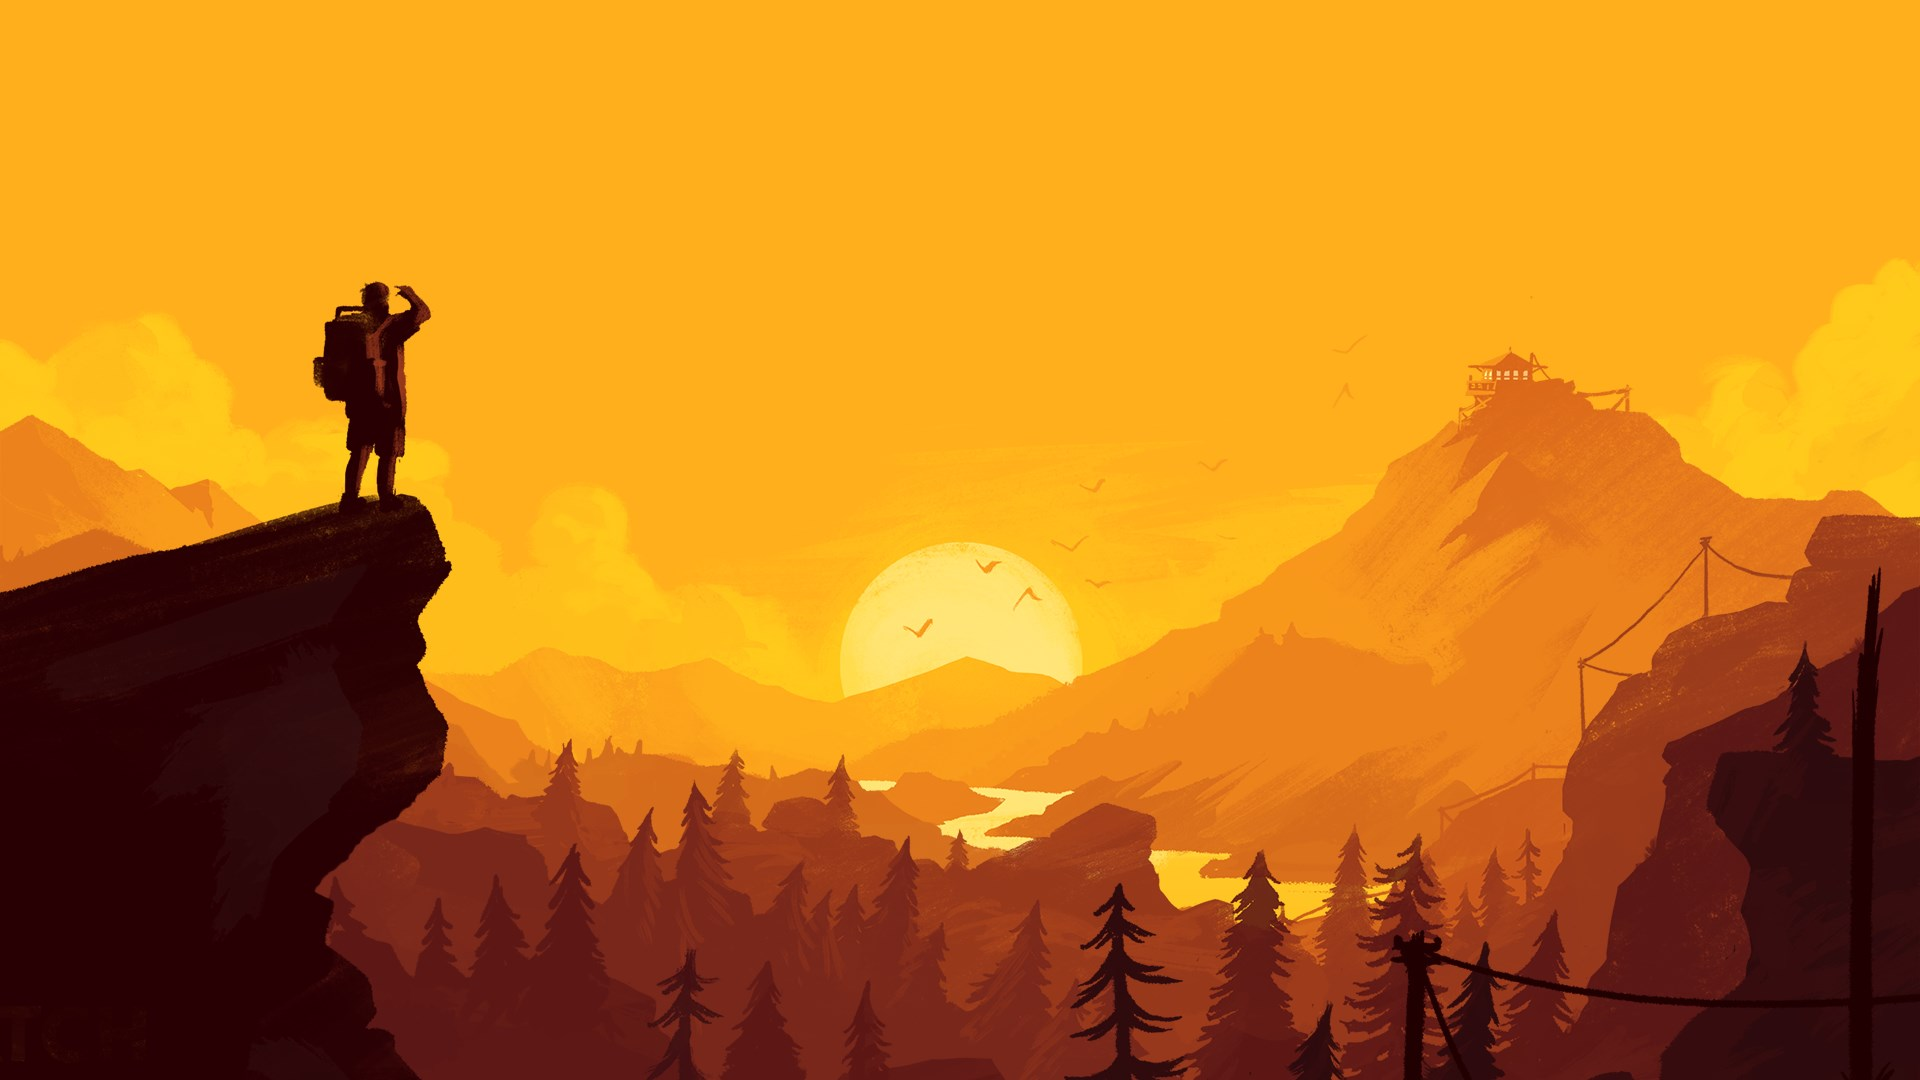 Firewatch: All of the Ways to Play